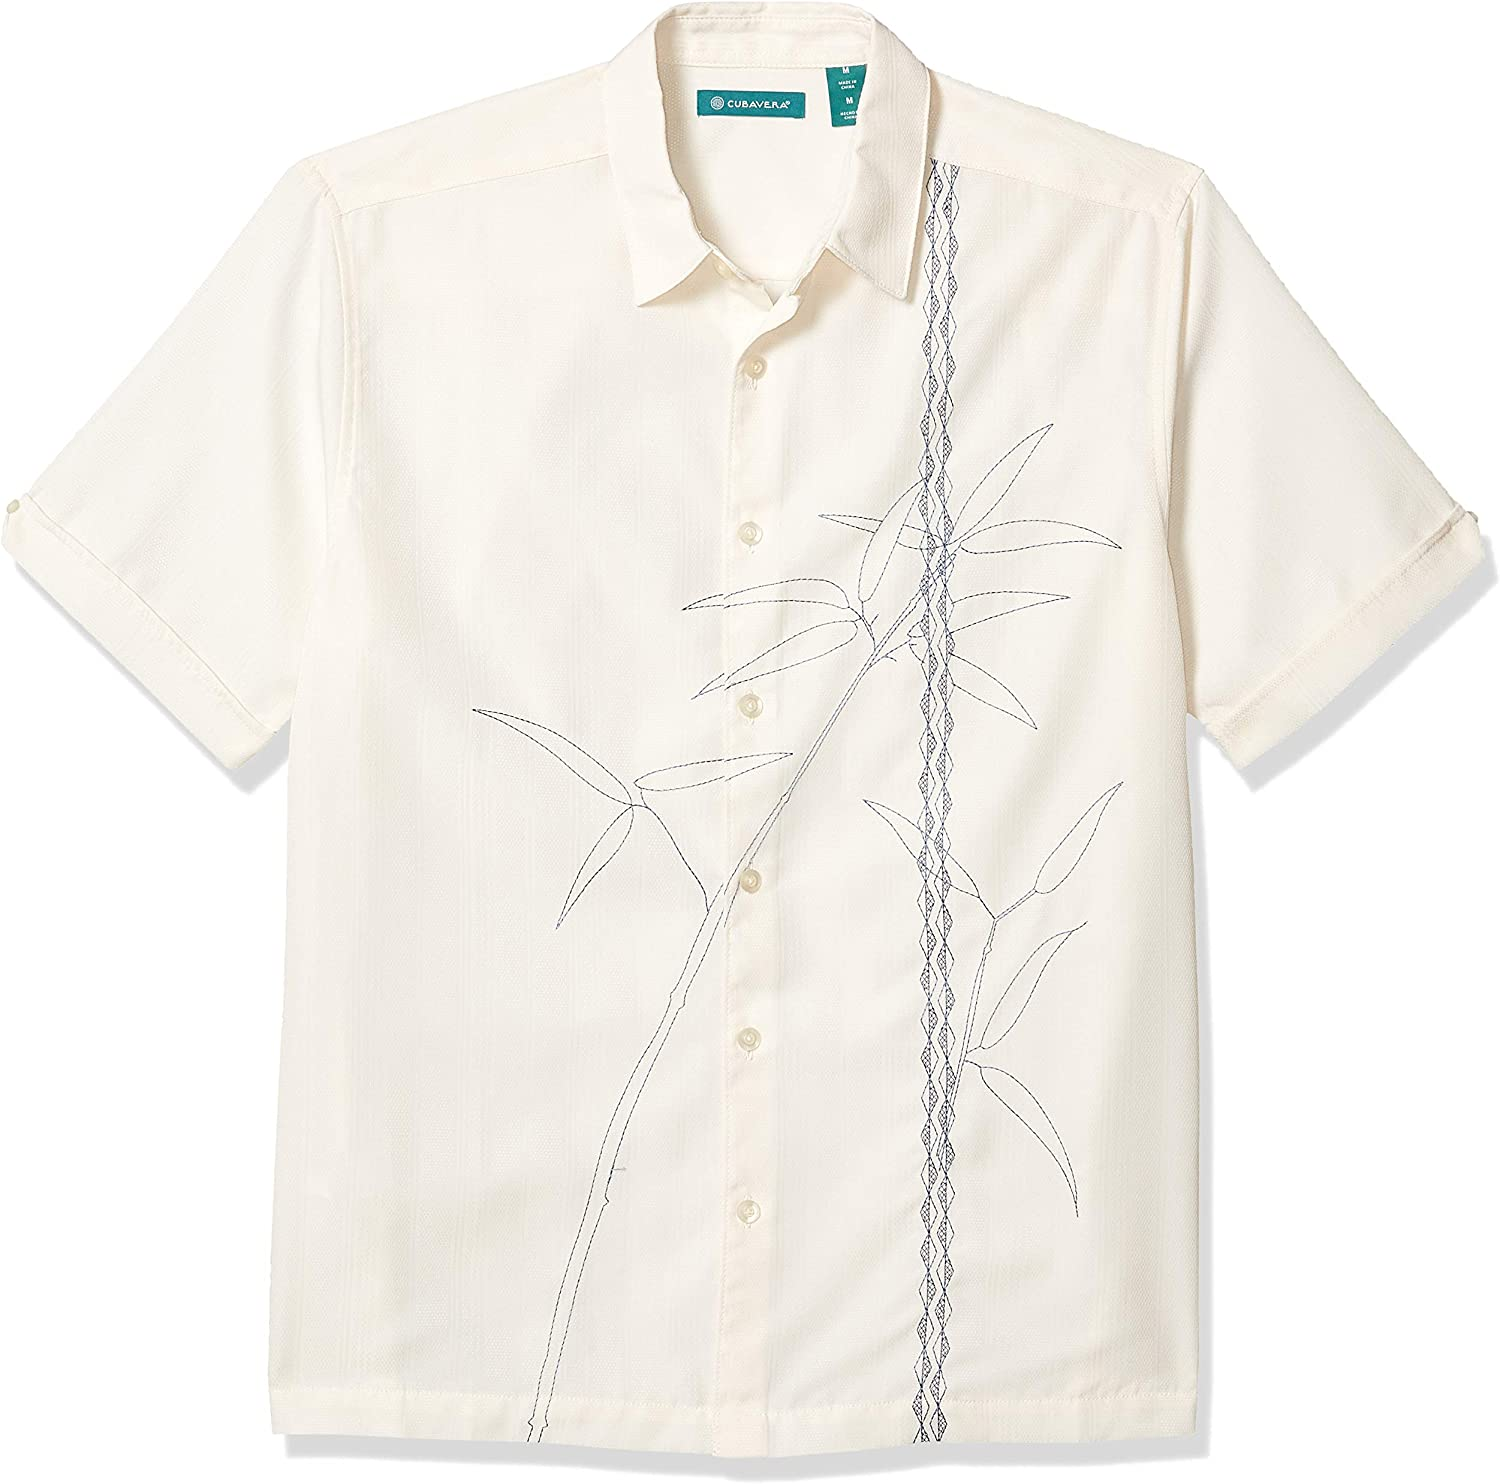 Cubavera Men's Textured Asymmetrical Bamboo Embroidery Shirt